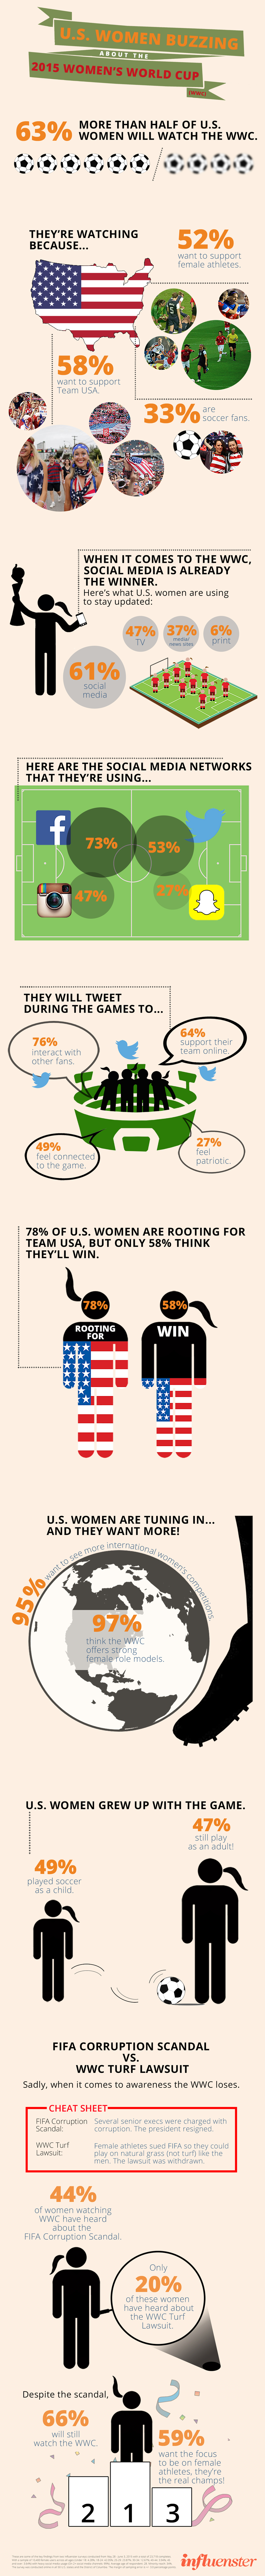 US Women Tuning into Womens World Cup Despite FIFA Scandal